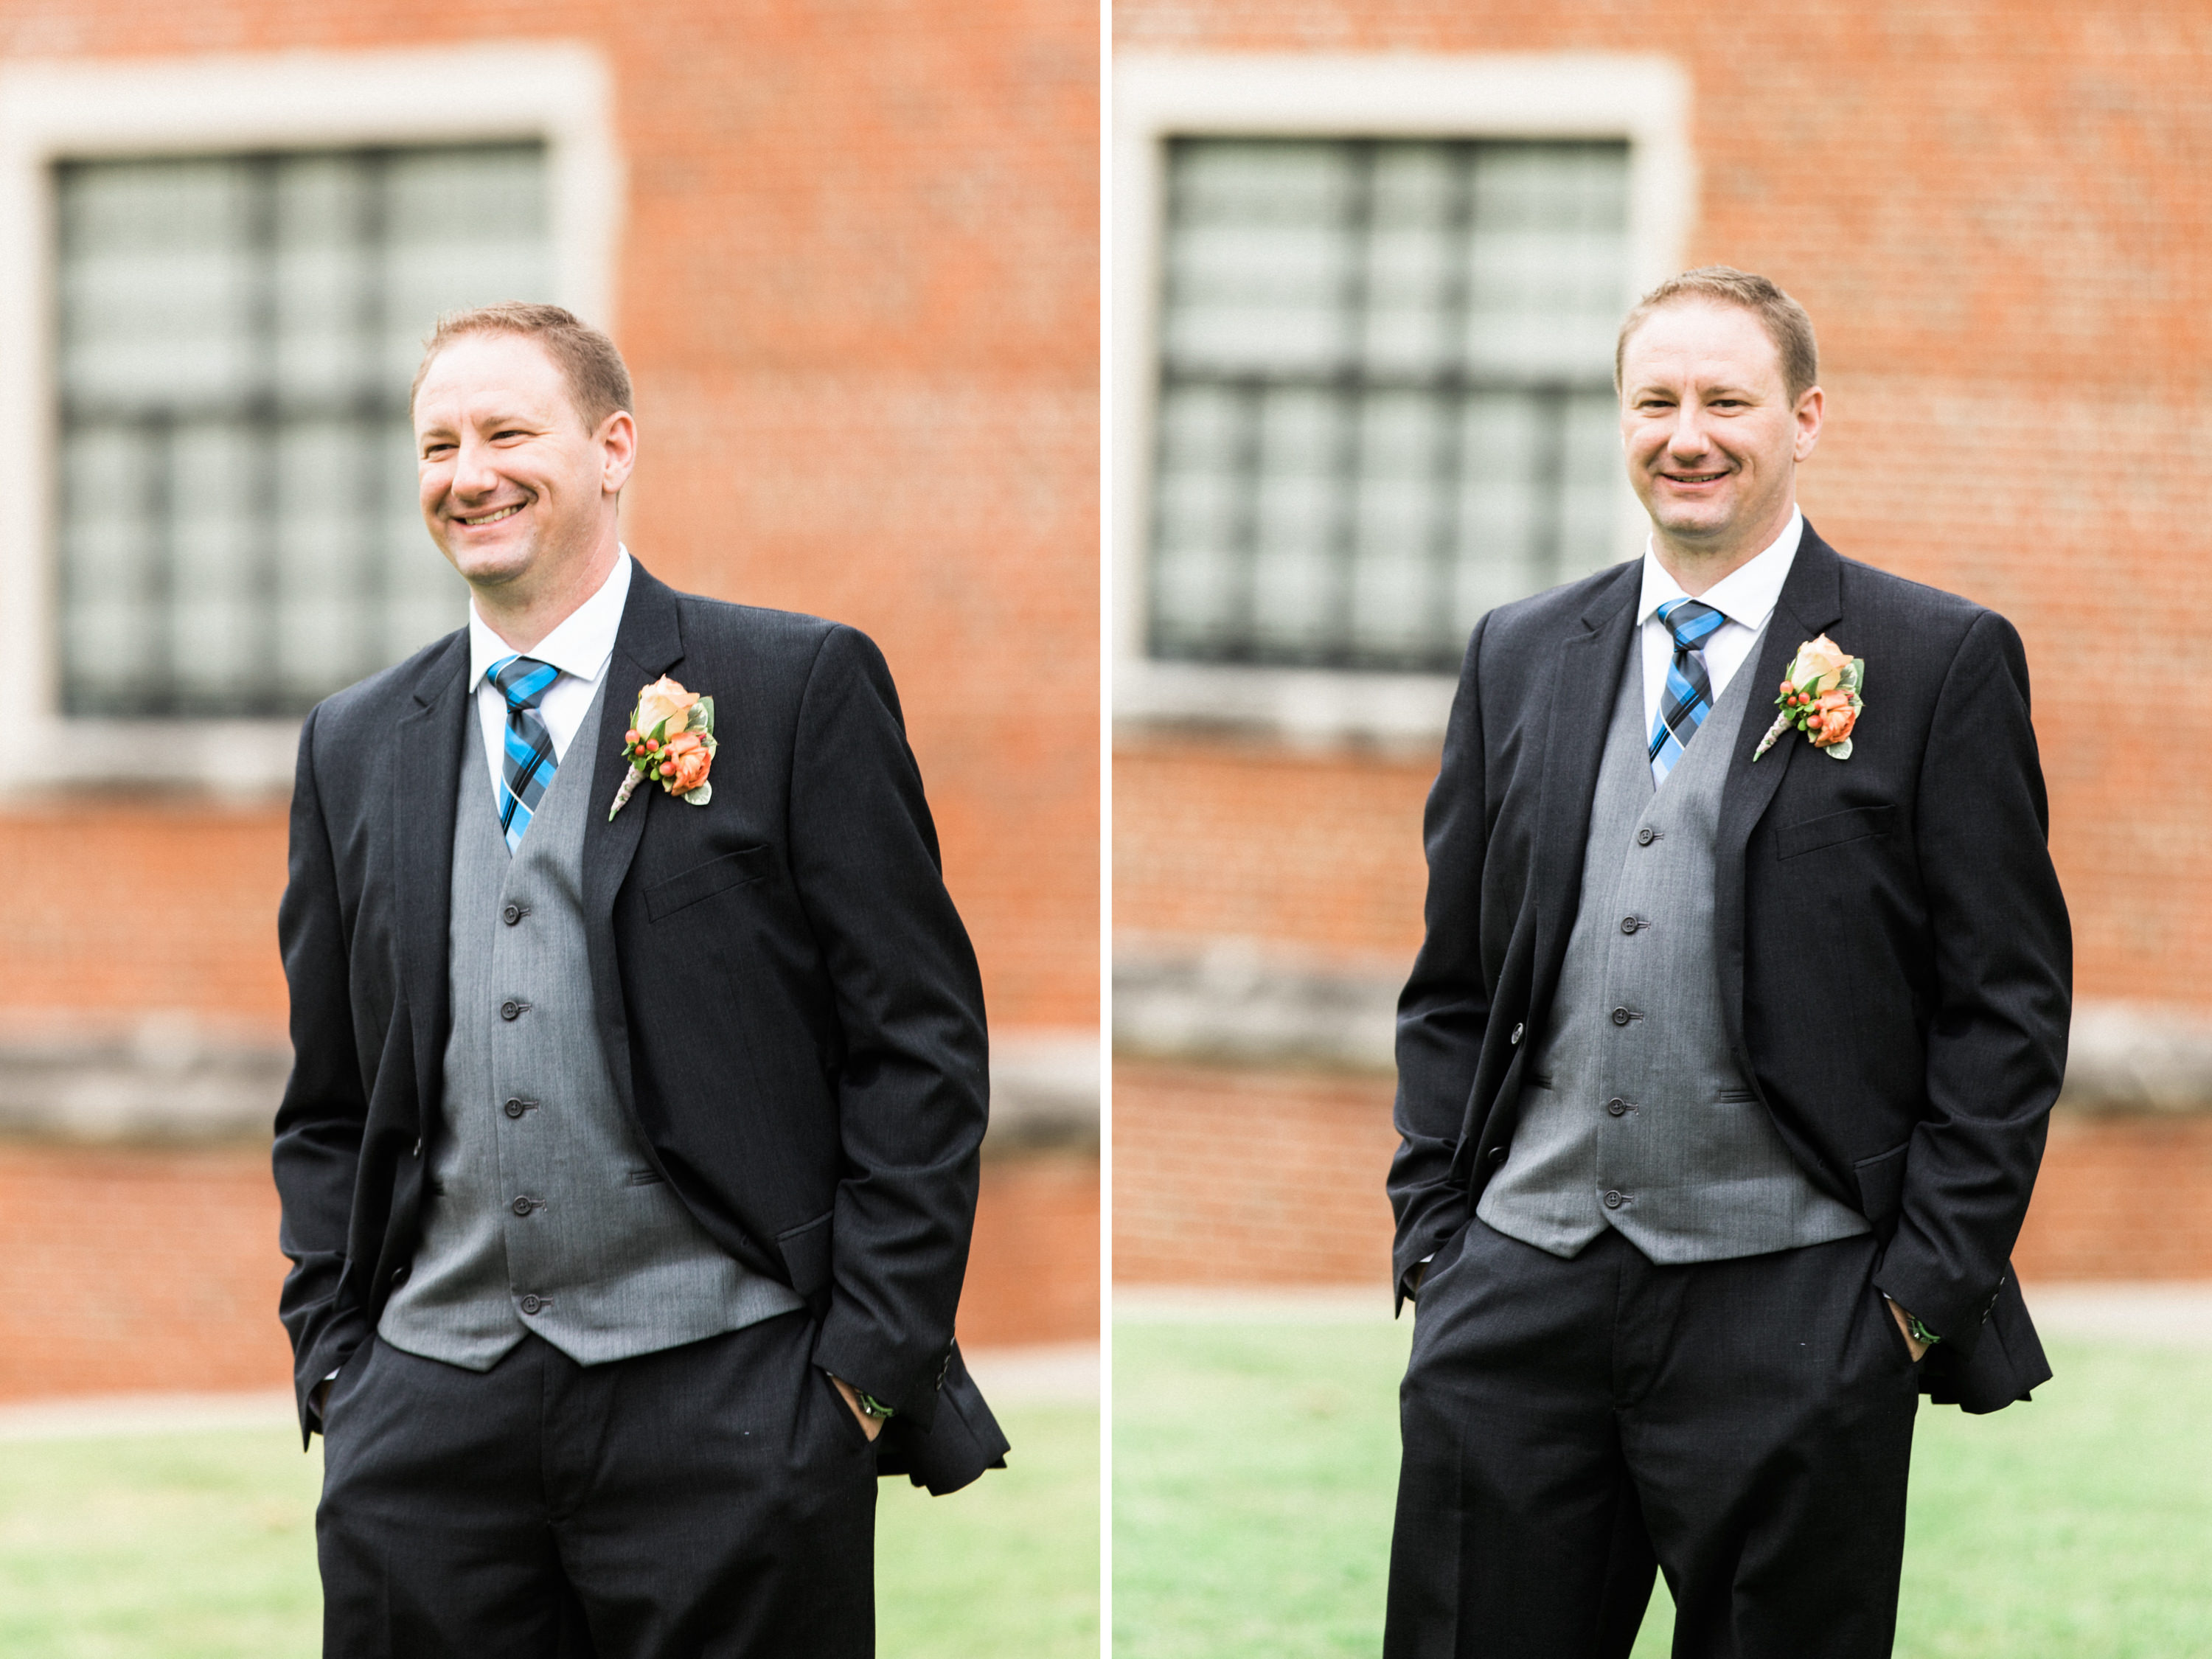 MAULDIN_WEDDING_MONTGOMERY_ALABAMA_WEDDING_PHOTOGRAPHY_43